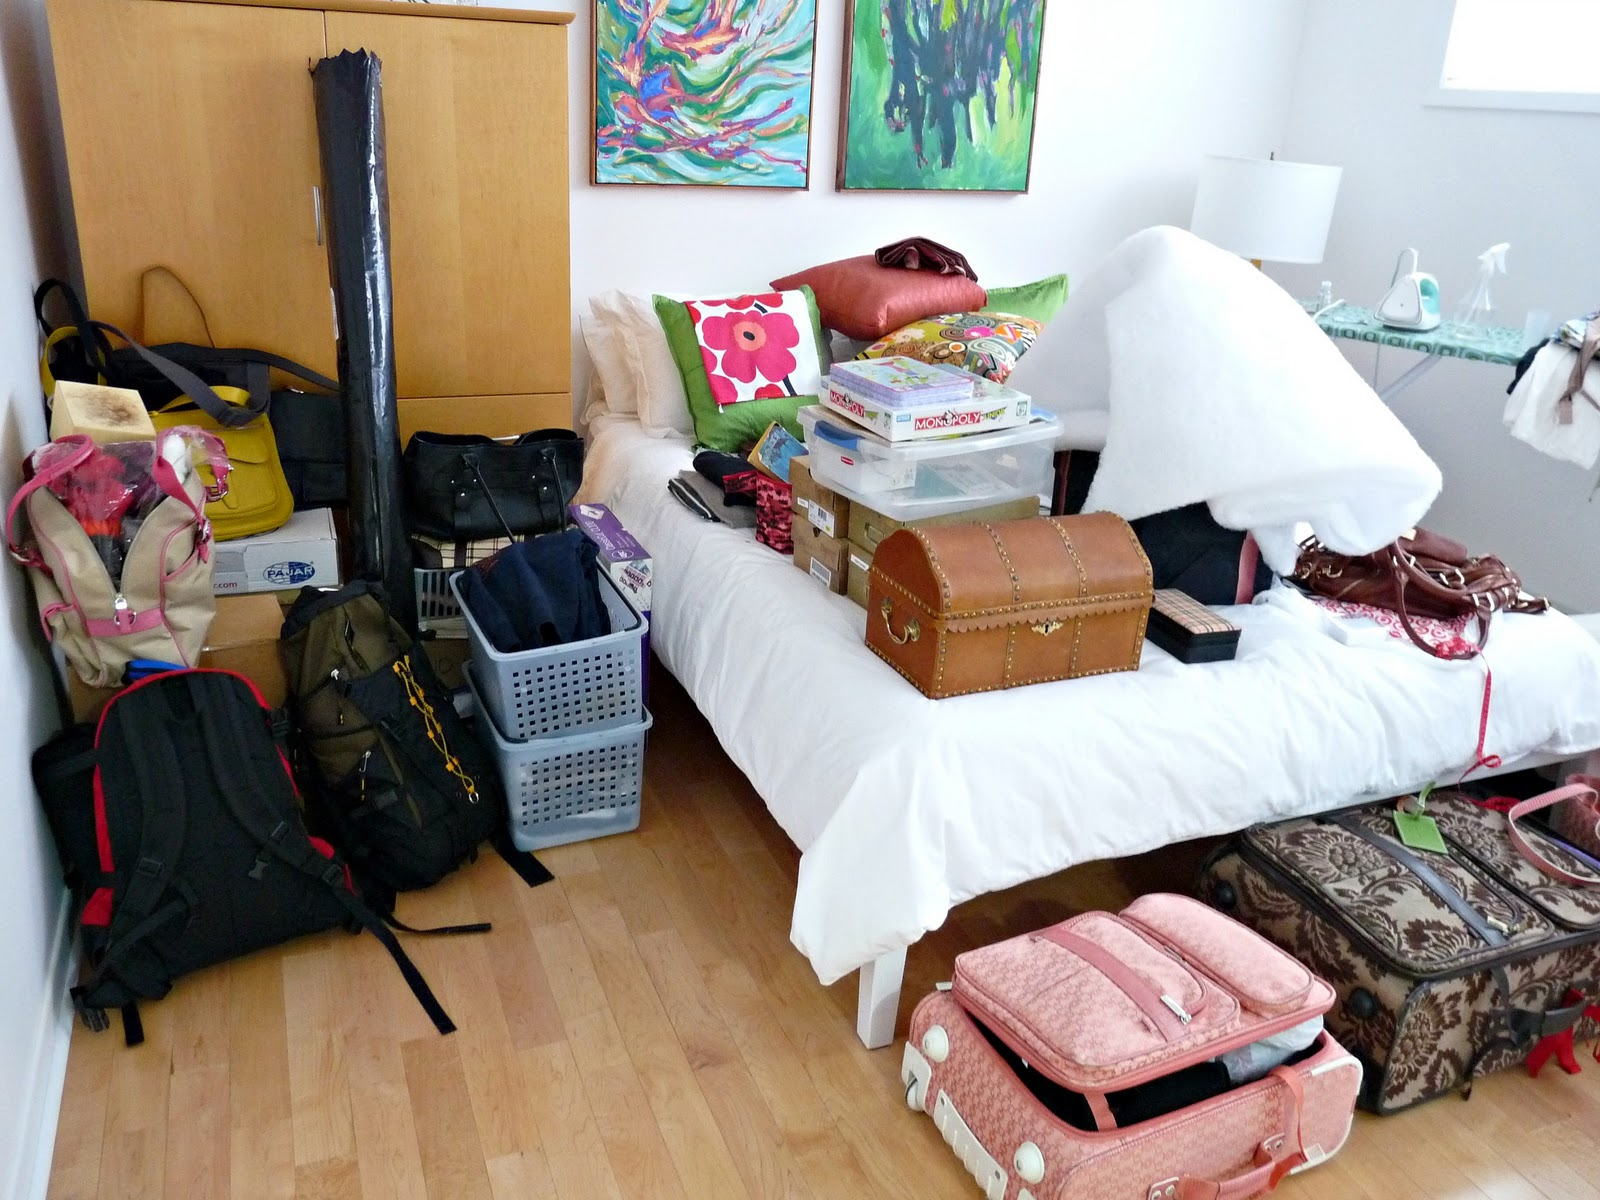 Petiteglamgirl storage how to make the most out of your - How to make the most of a small bedroom ...